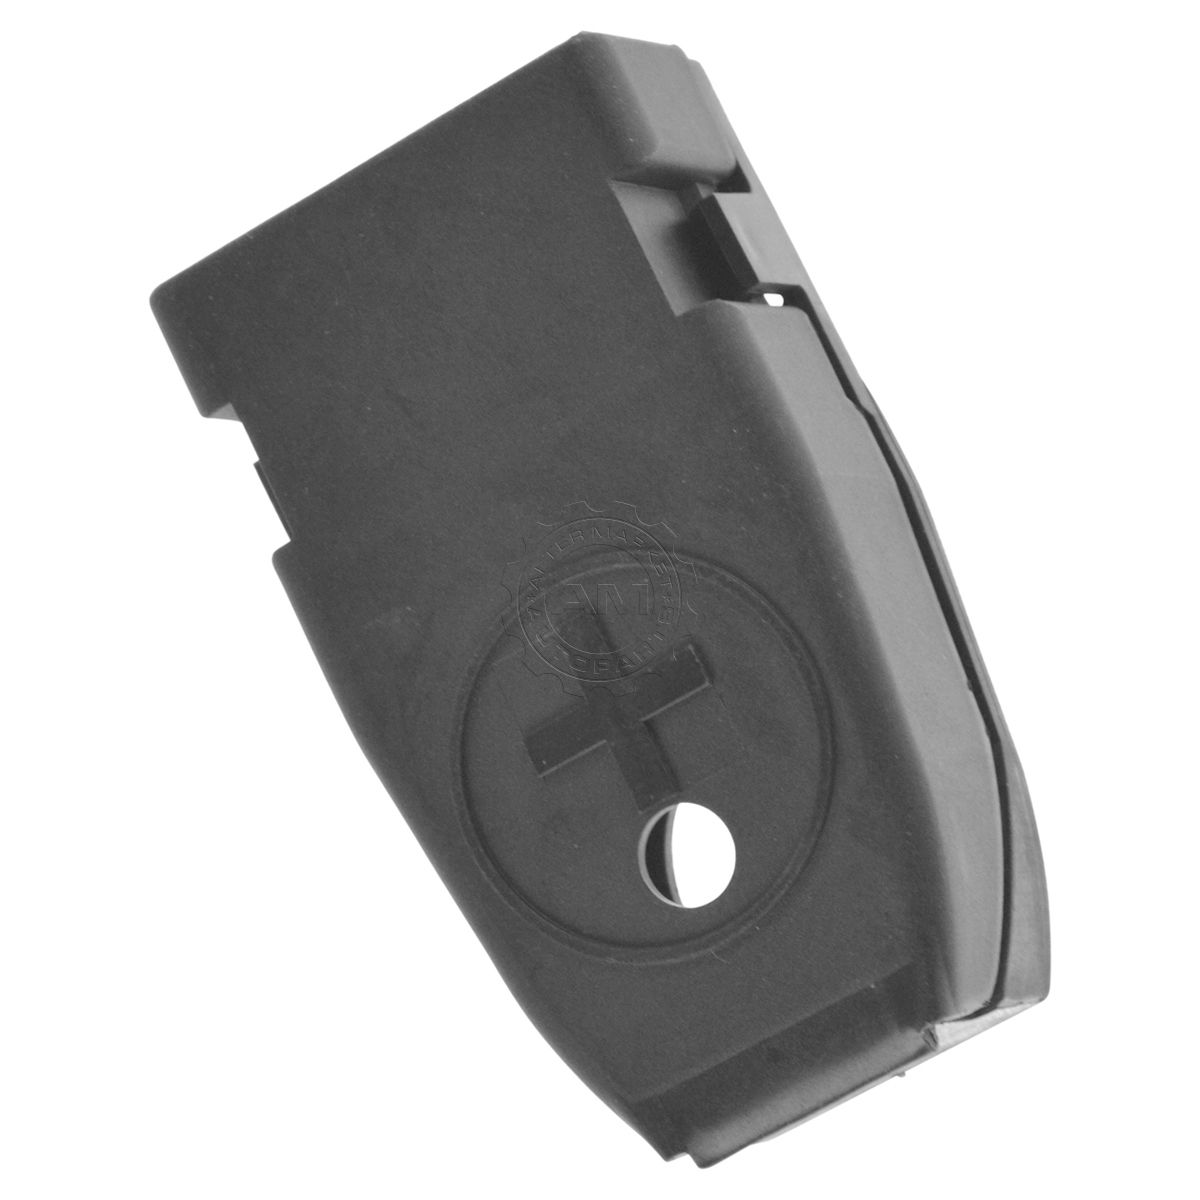 Oem Xf1z 14277 Aa Positive Battery Terminal Cover Cap For Ford Suv F150 Truck New